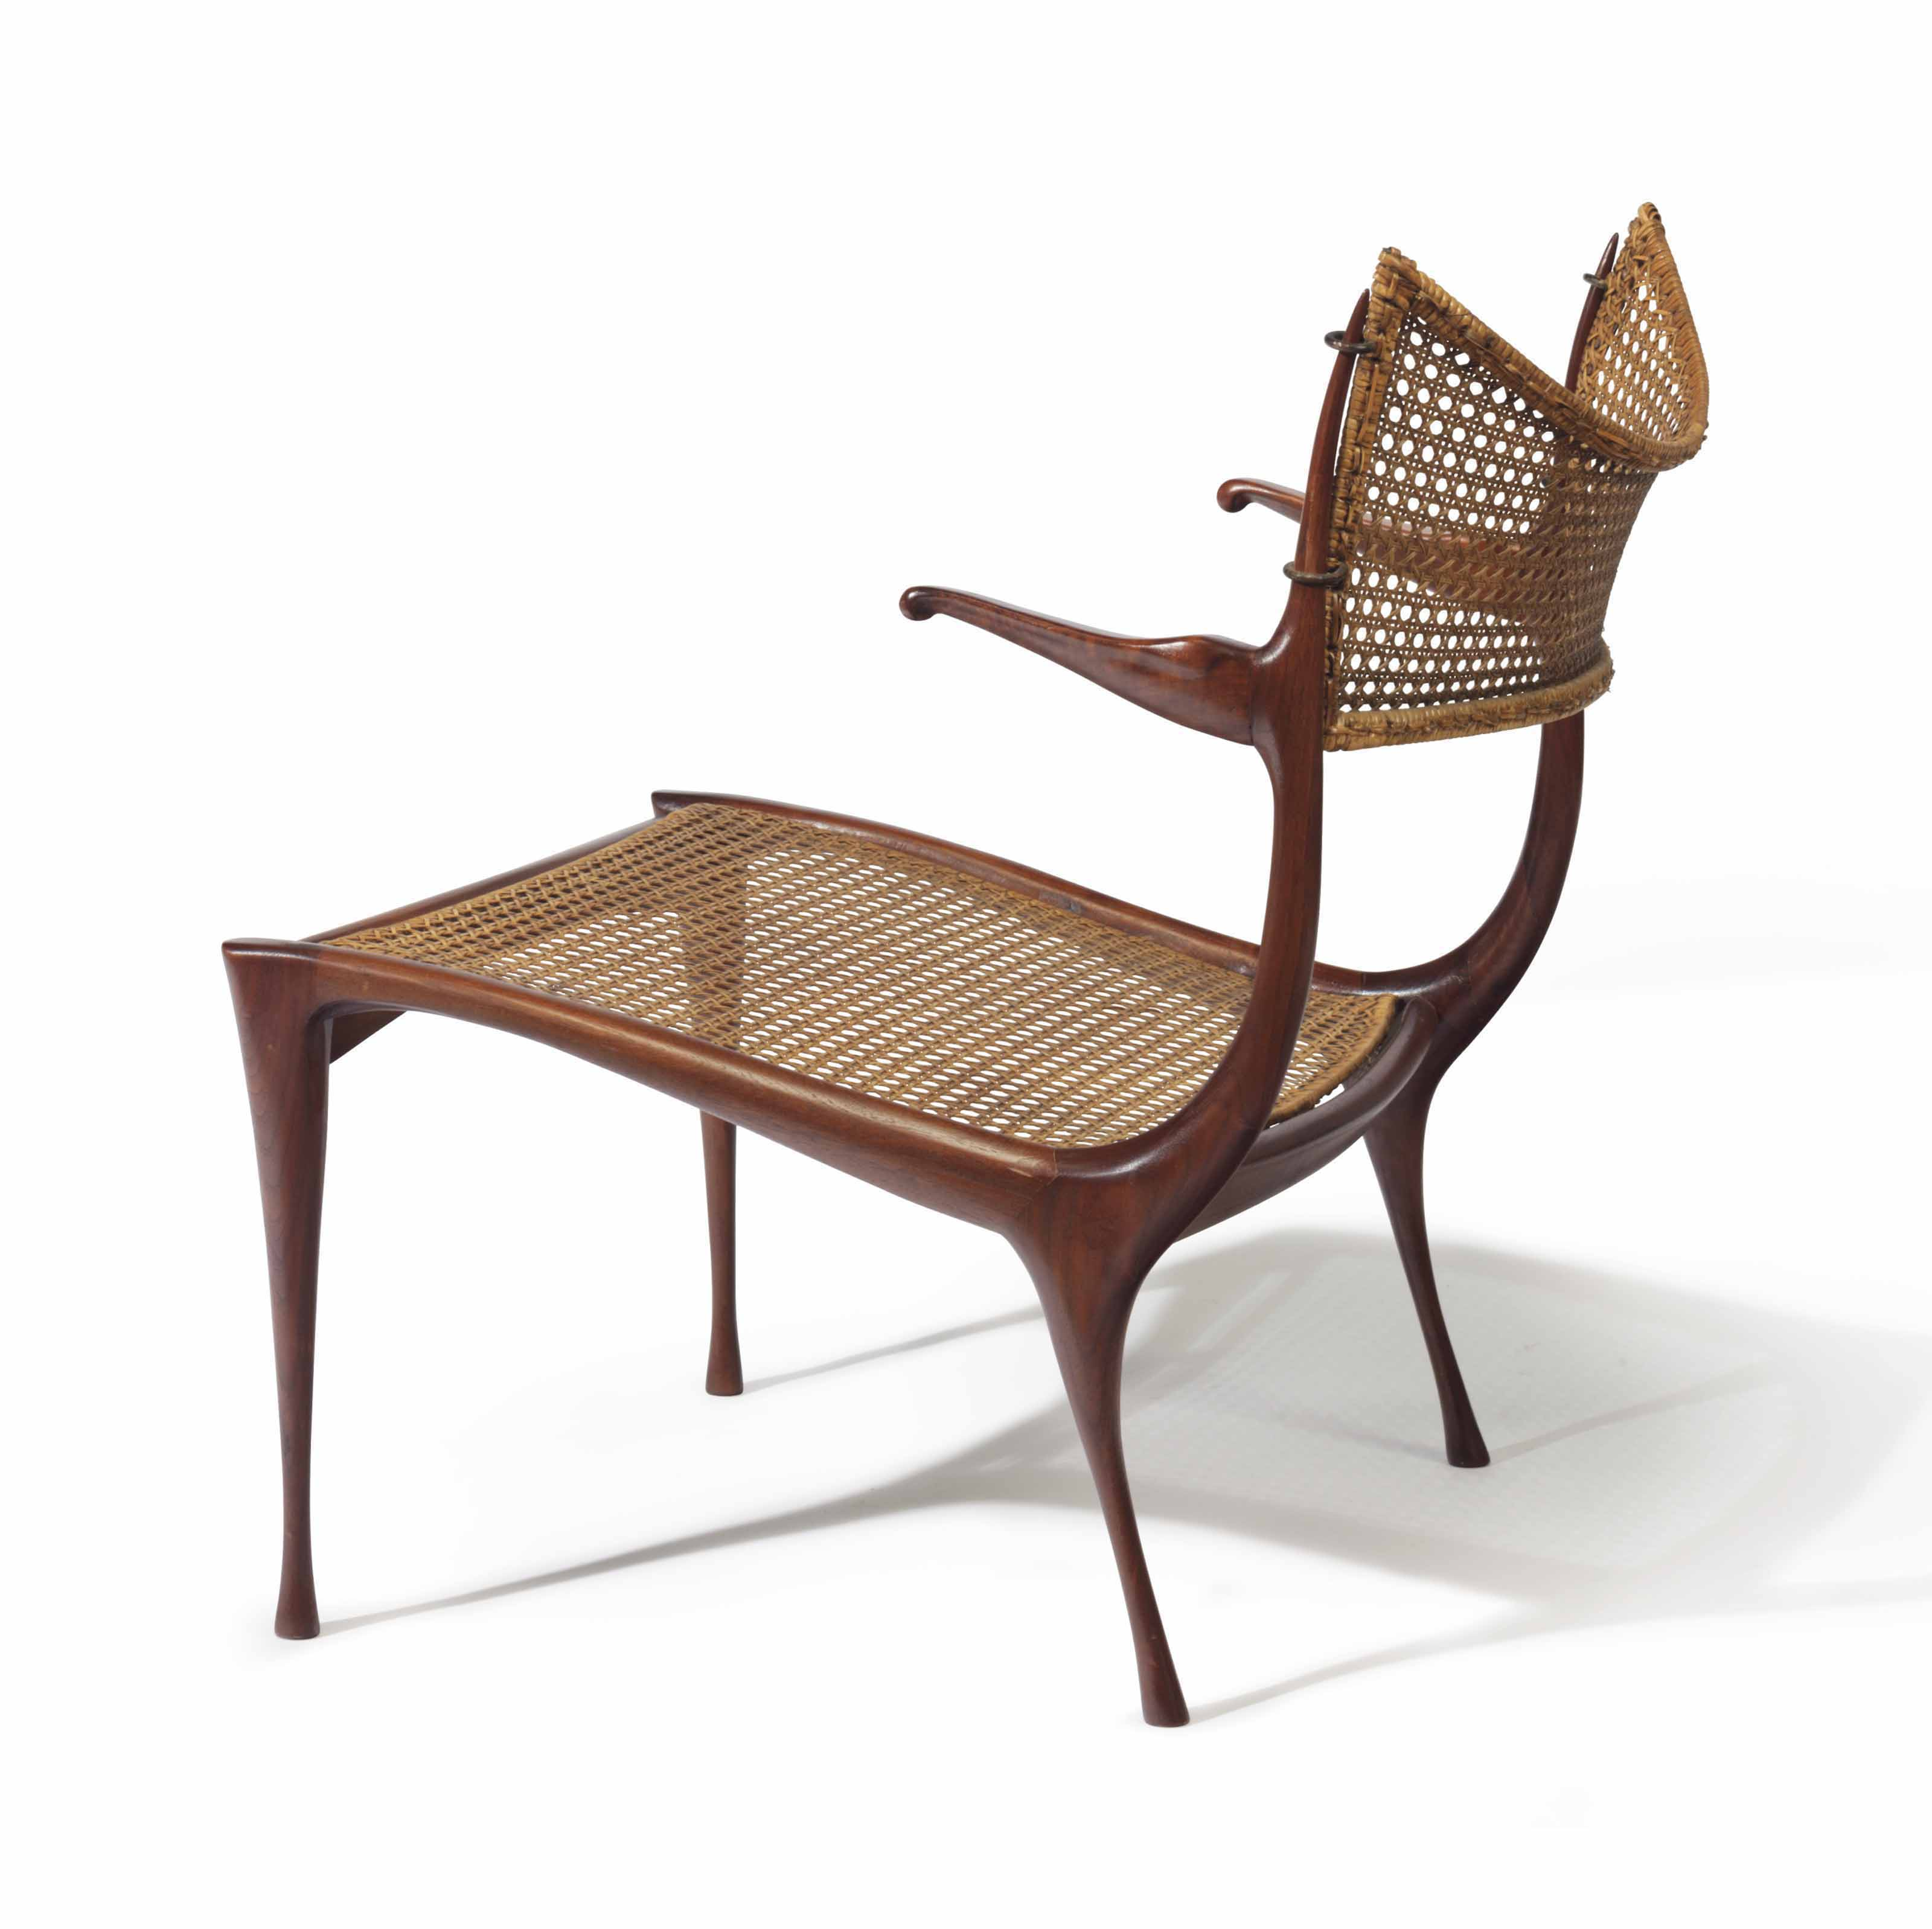 Designer chairs for modern homes Christies